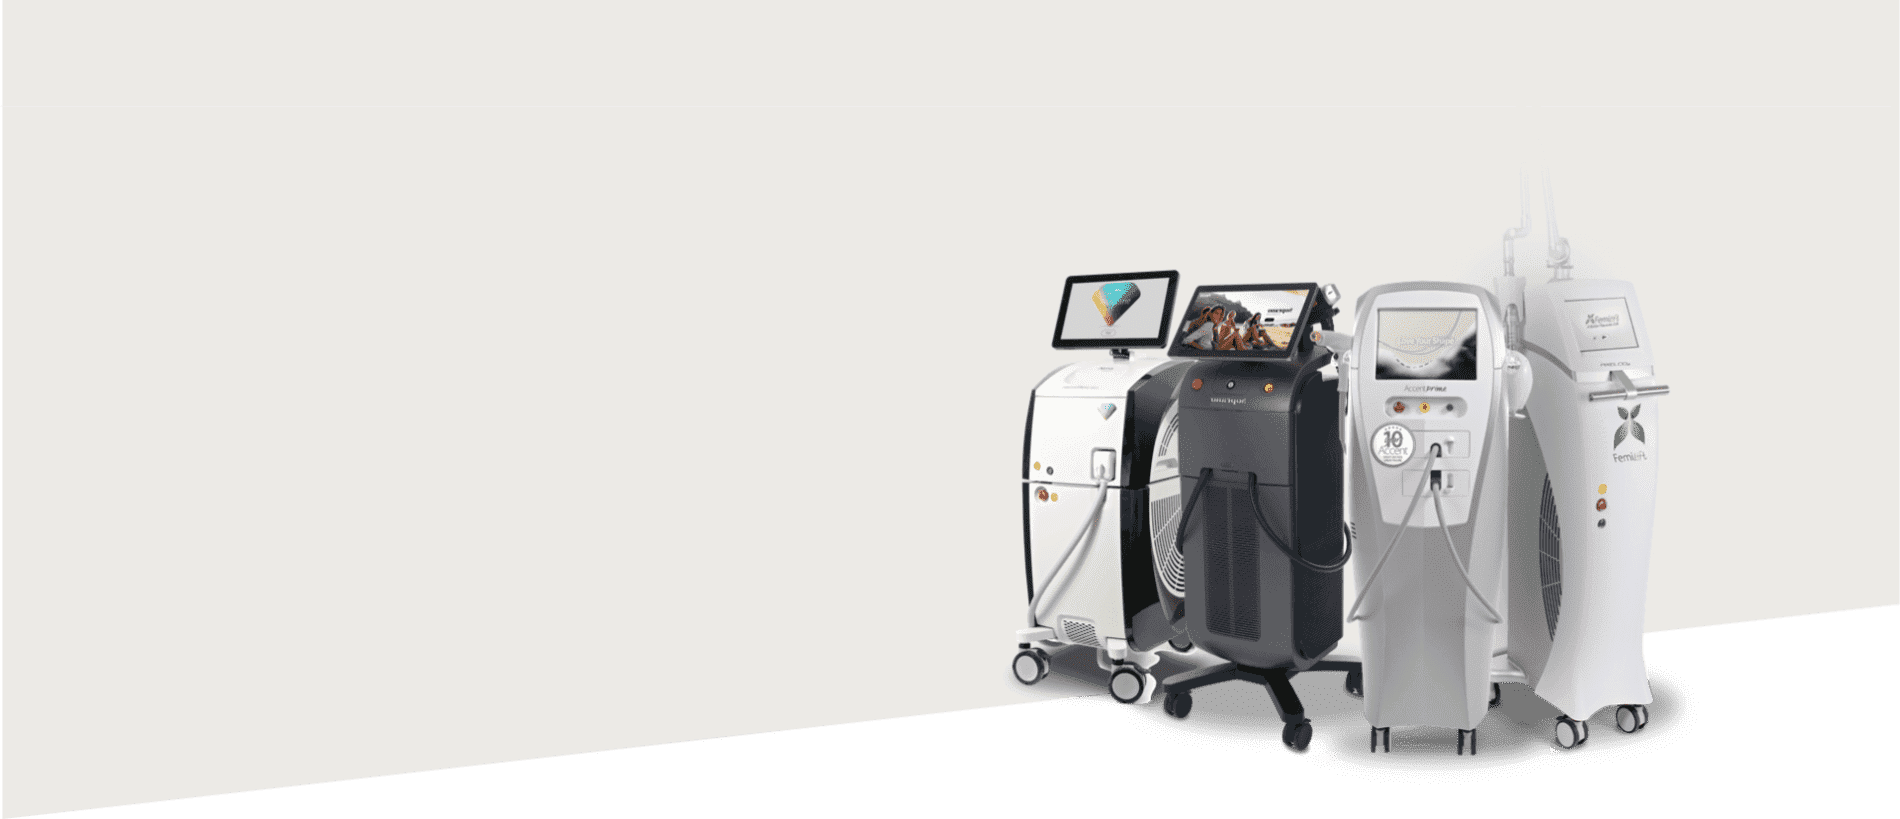 Aesthetic Laser products by Alma Lasers